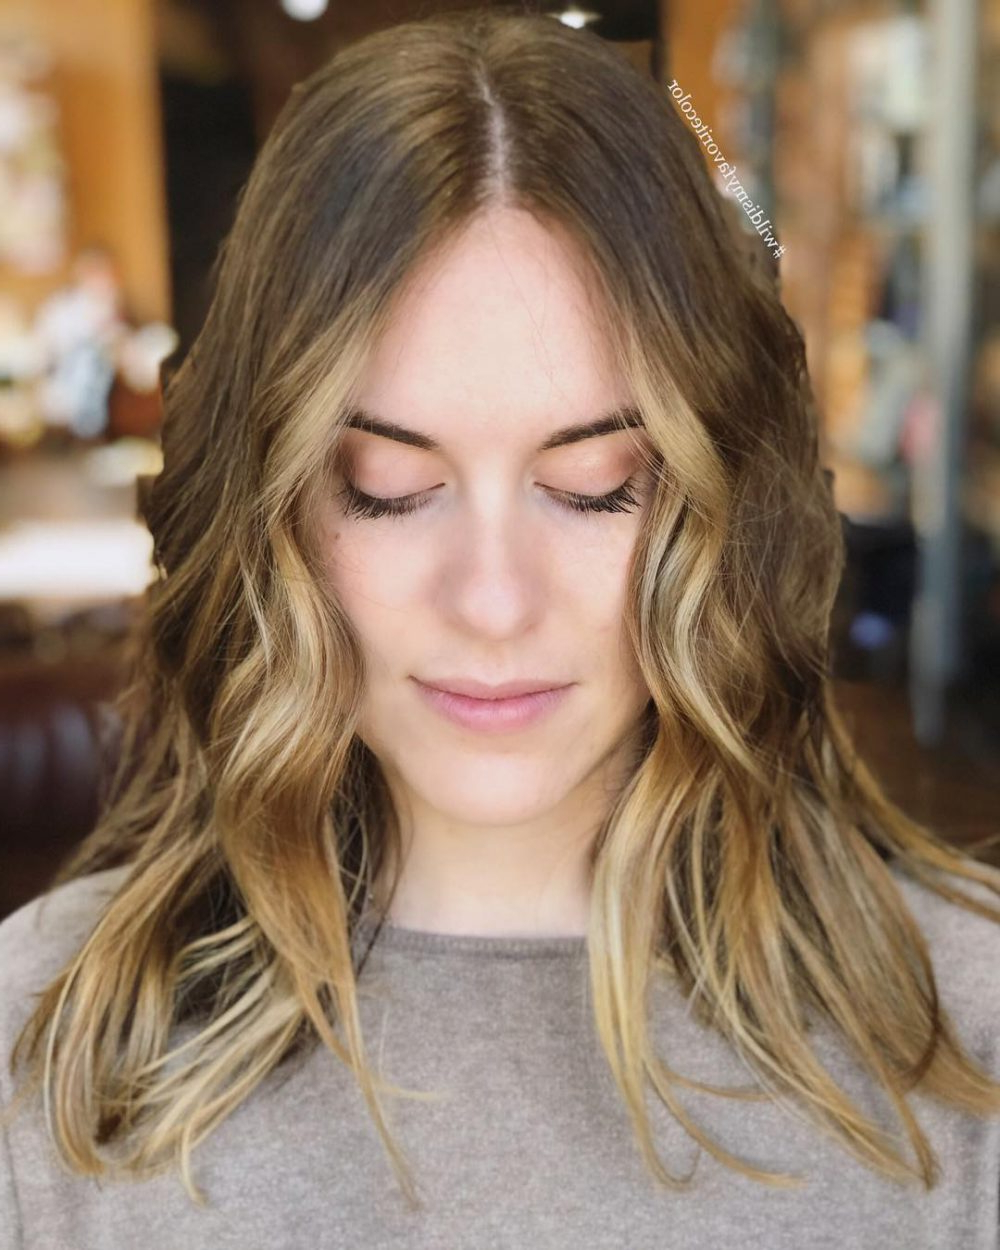 17 Flattering Medium Hairstyles For Round Faces In 2019 In Famous Medium Haircuts Ideas For Round Faces (Gallery 15 of 20)